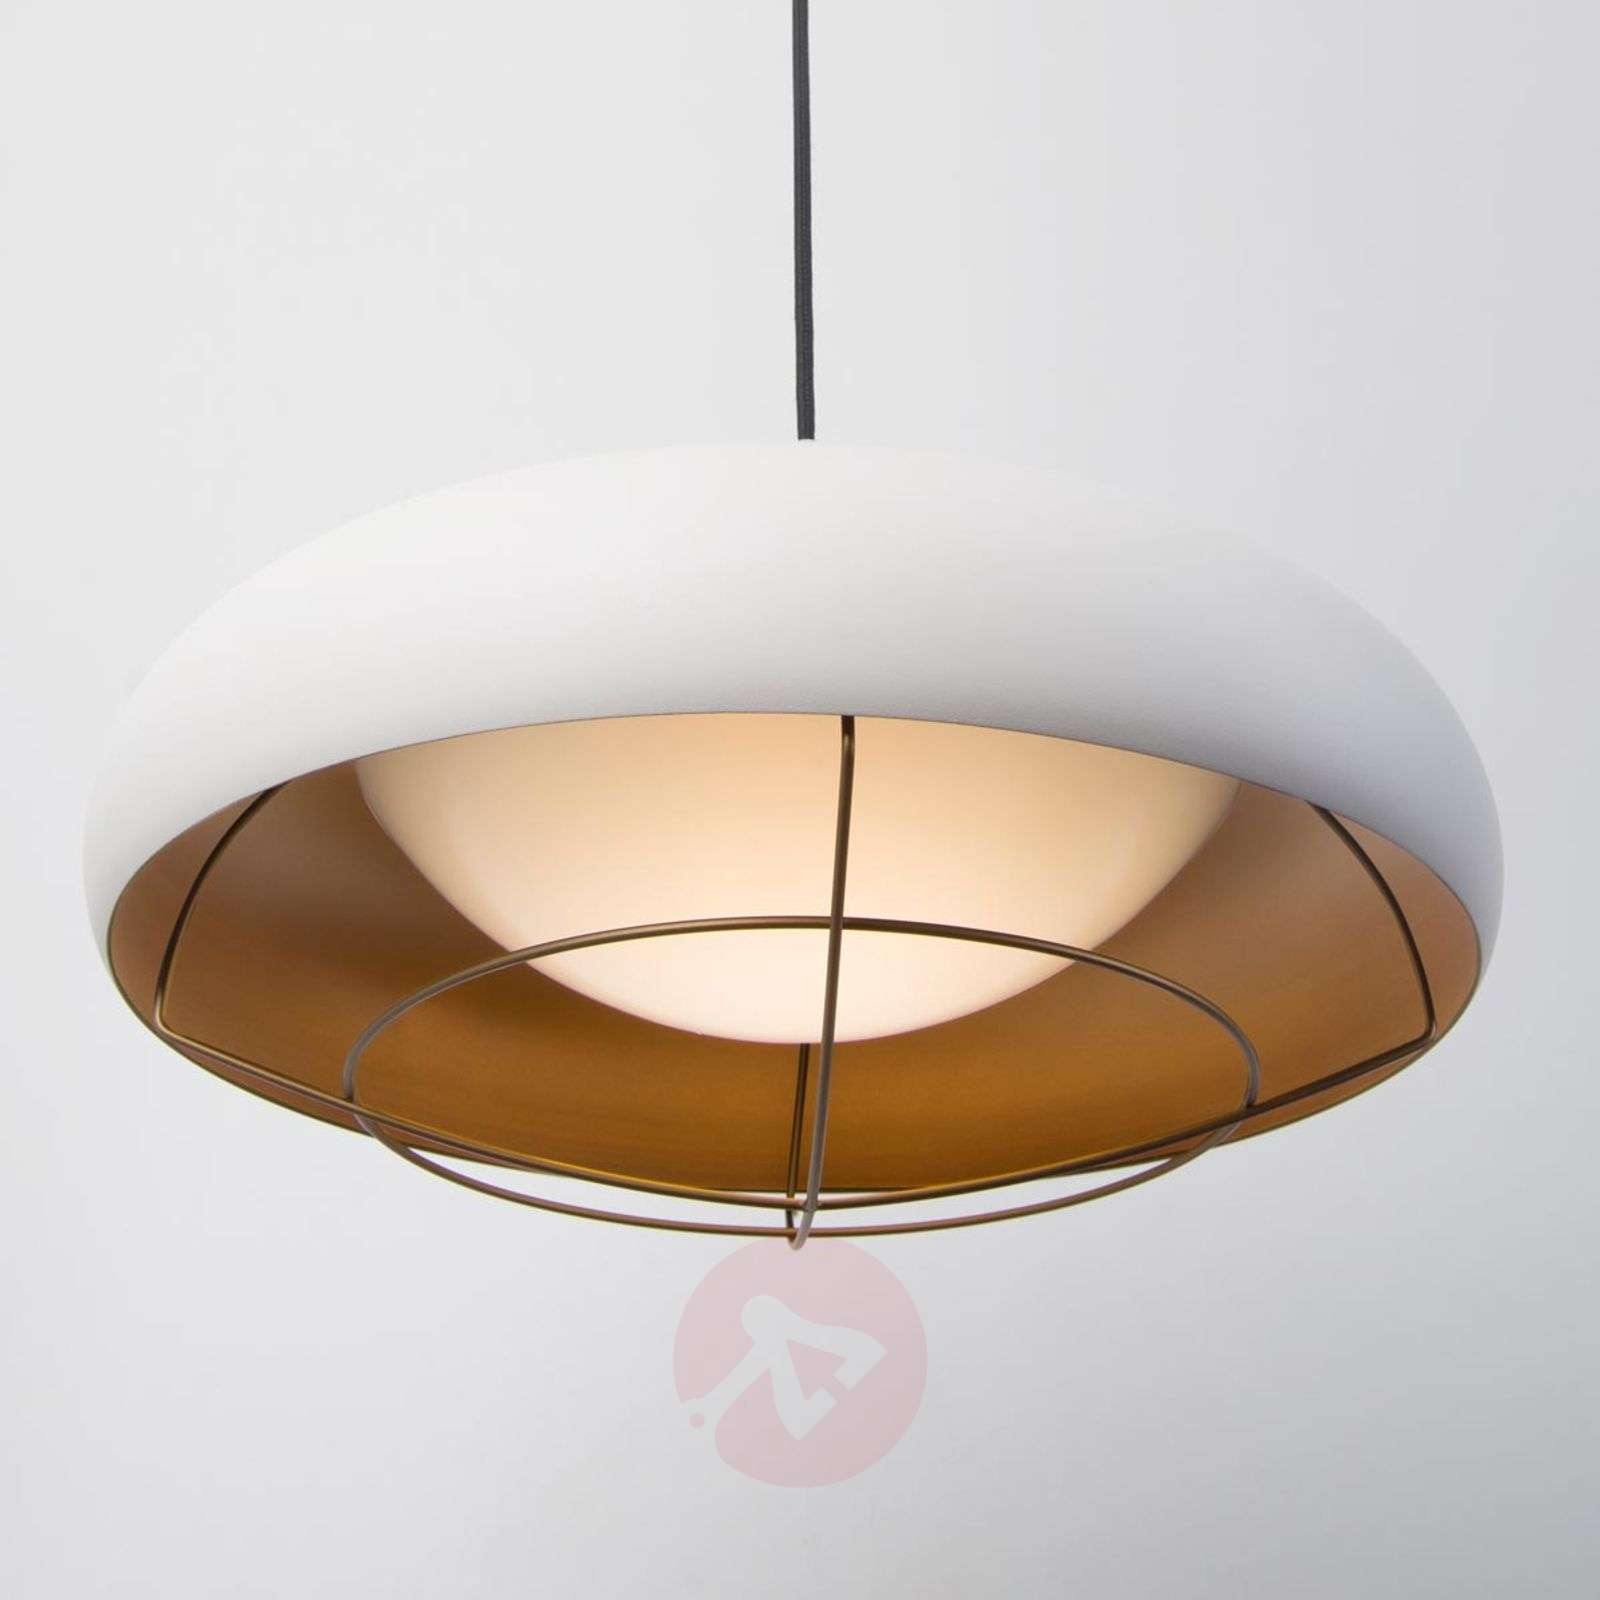 industrial look lighting. Sugar LED Pendant Light With An Industrial Look-6026589-01 Look Lighting